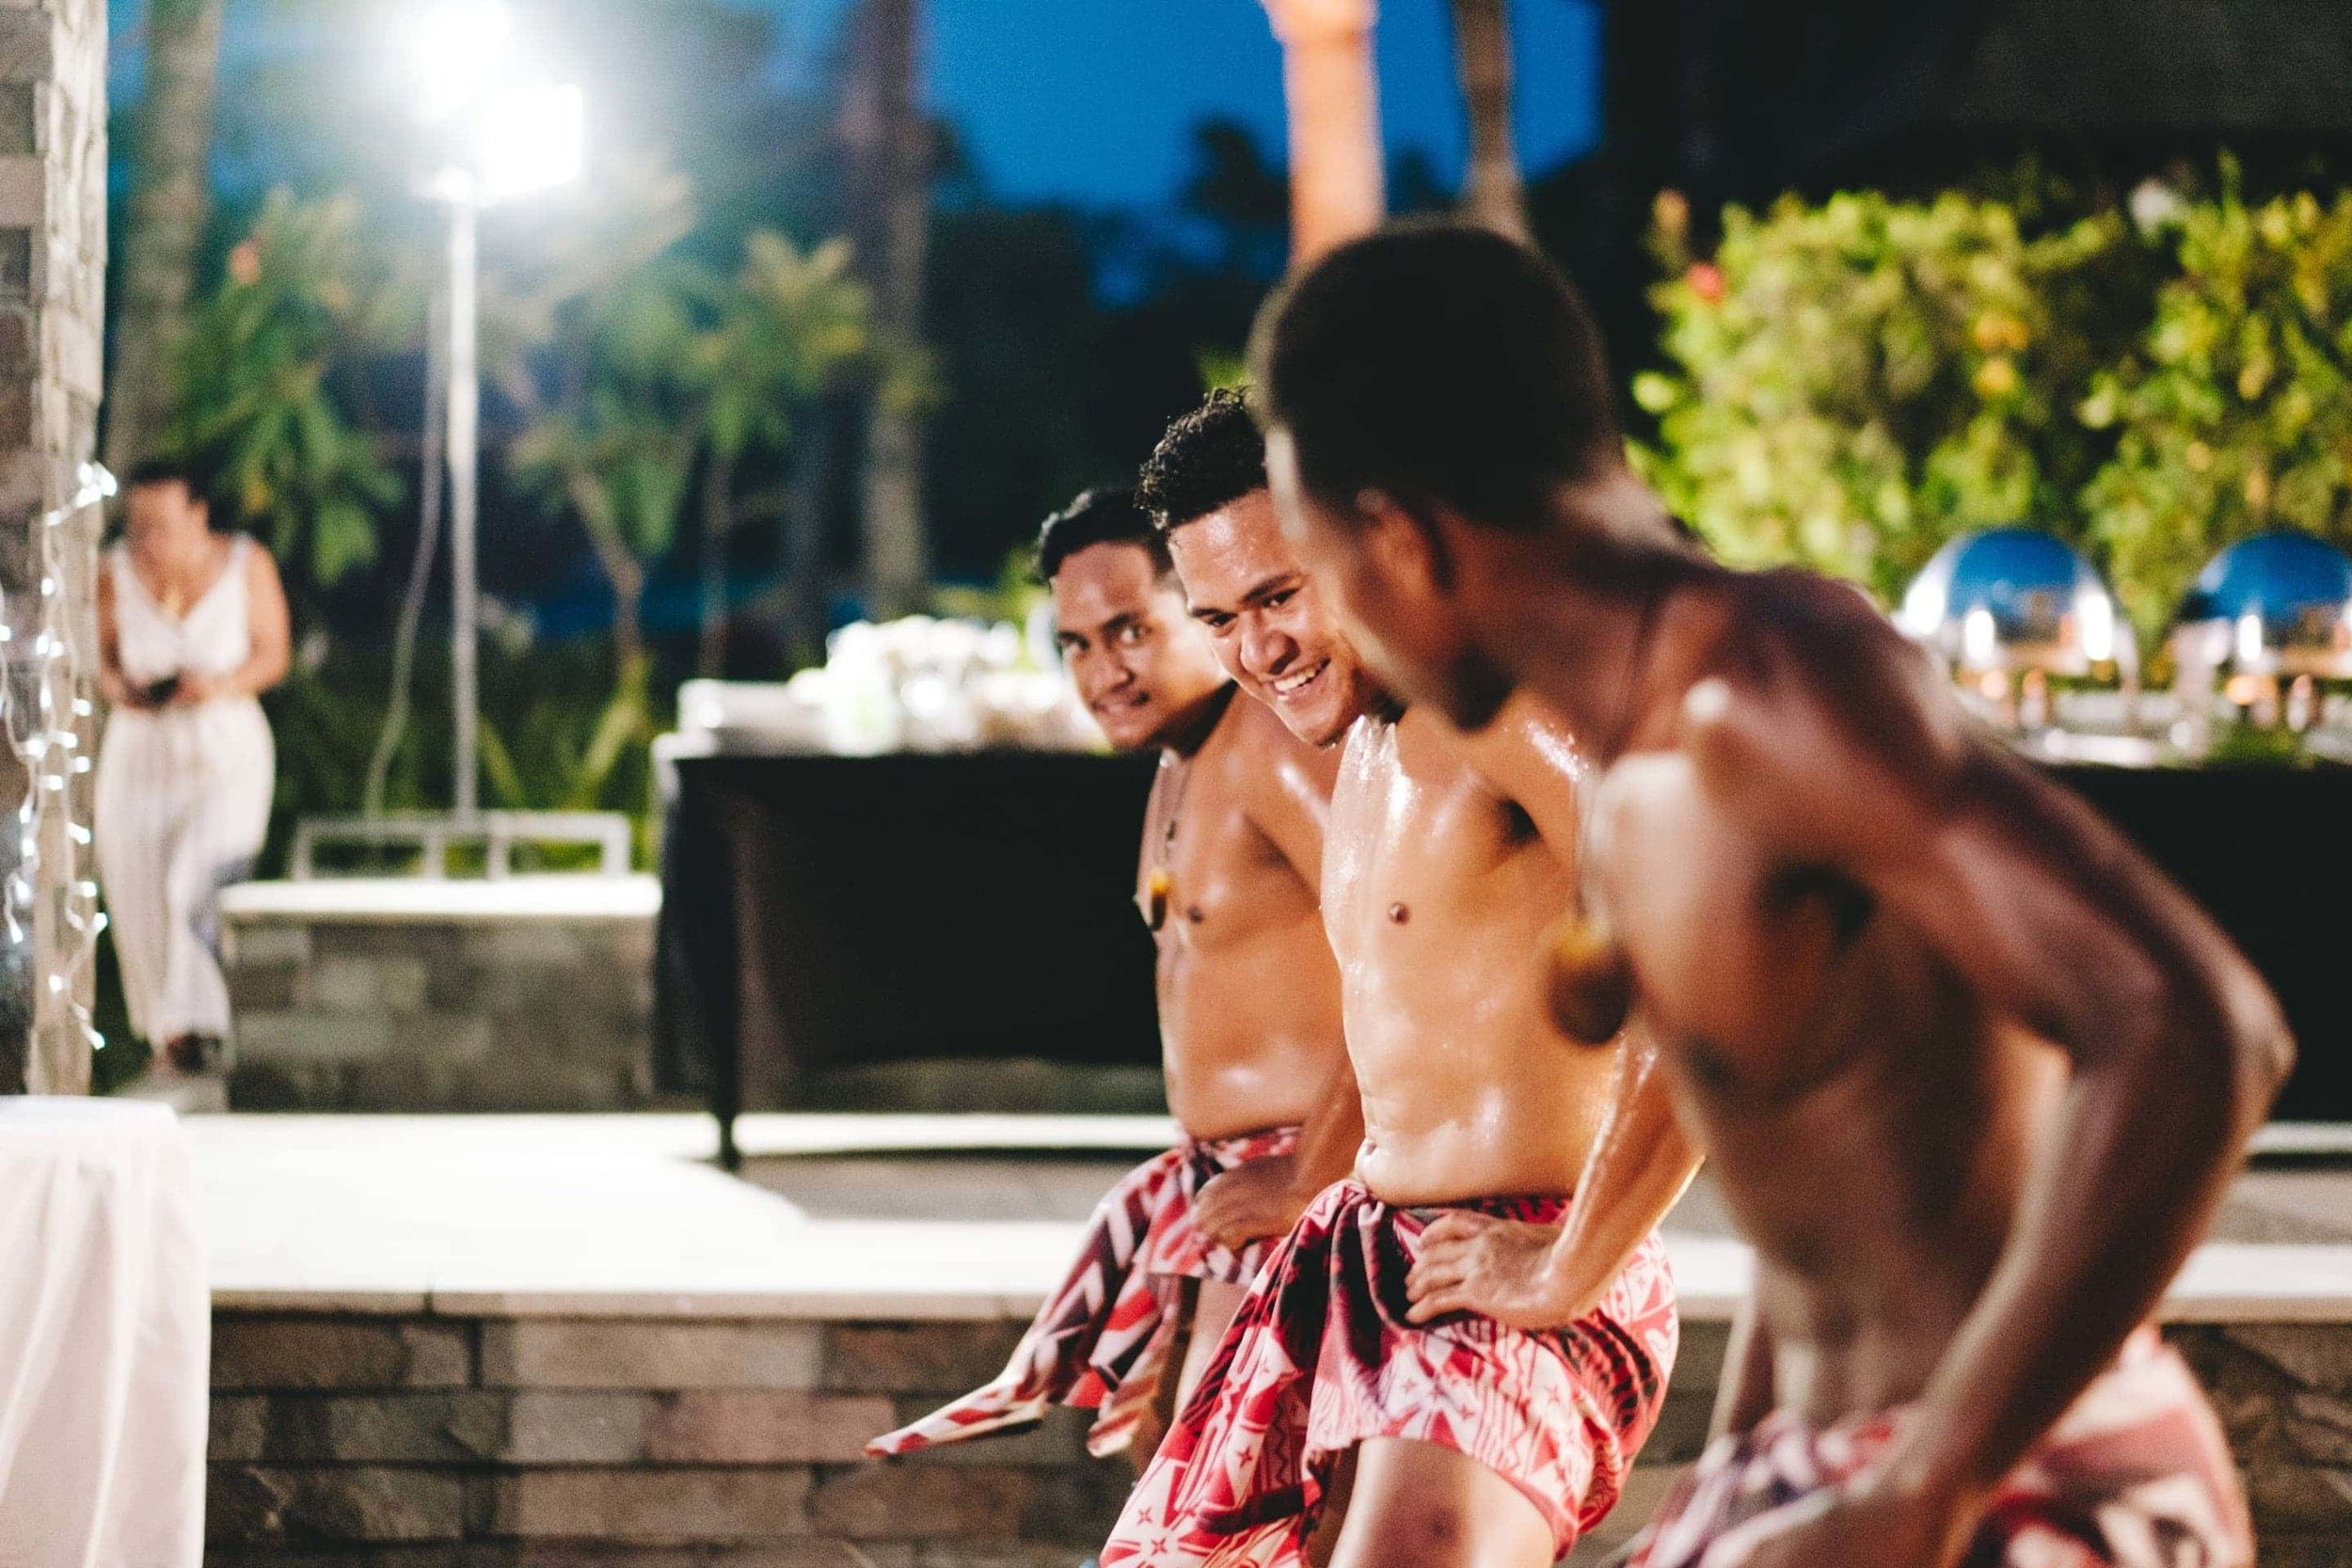 Polynesian dancers preform for the wedding guests